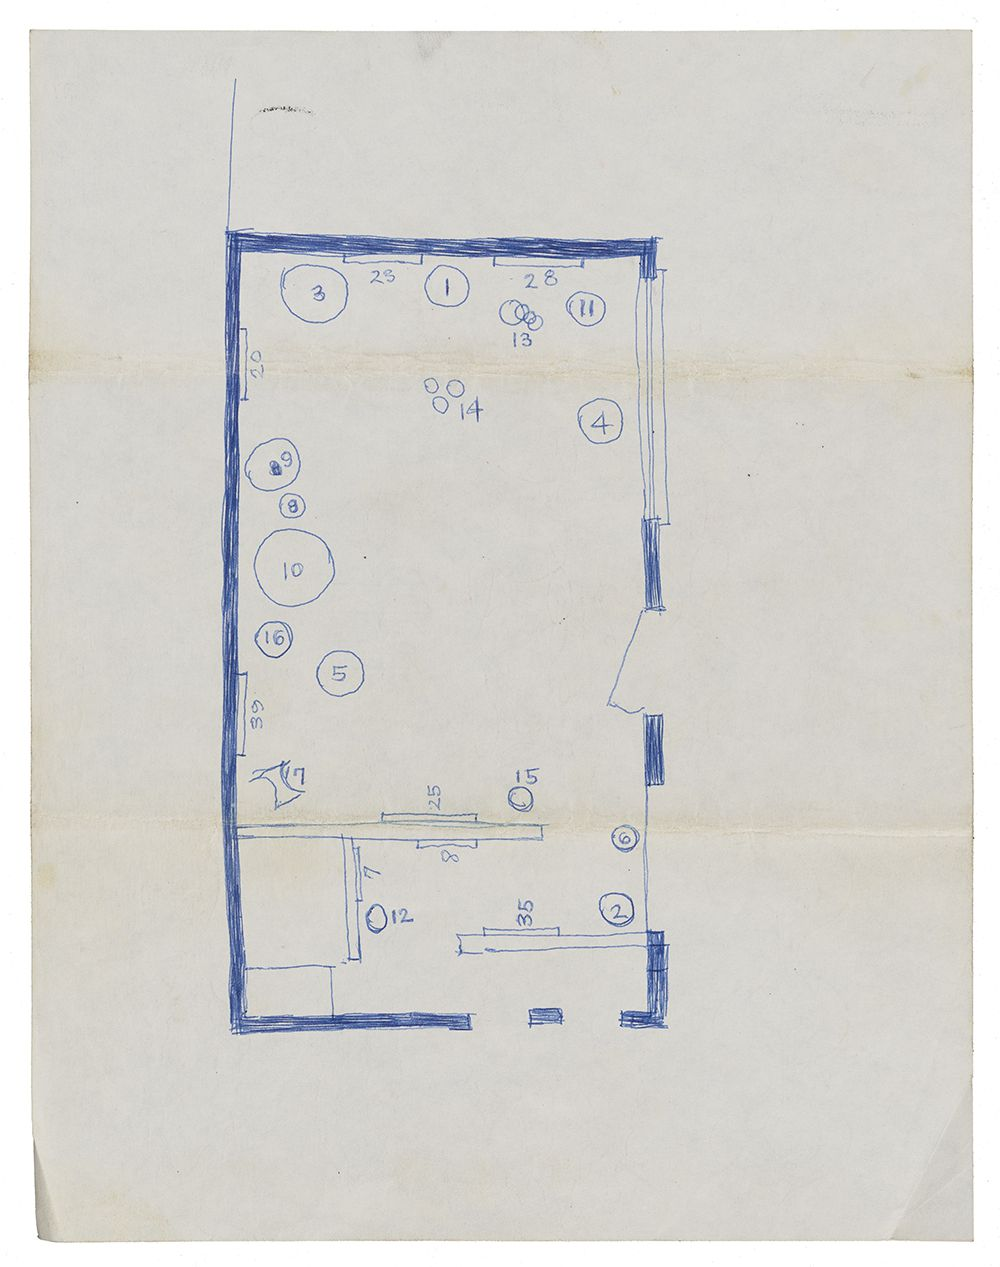 Exhibition plan for a gallery space in blue ink with numbers indicating where the sculptures will be installed.